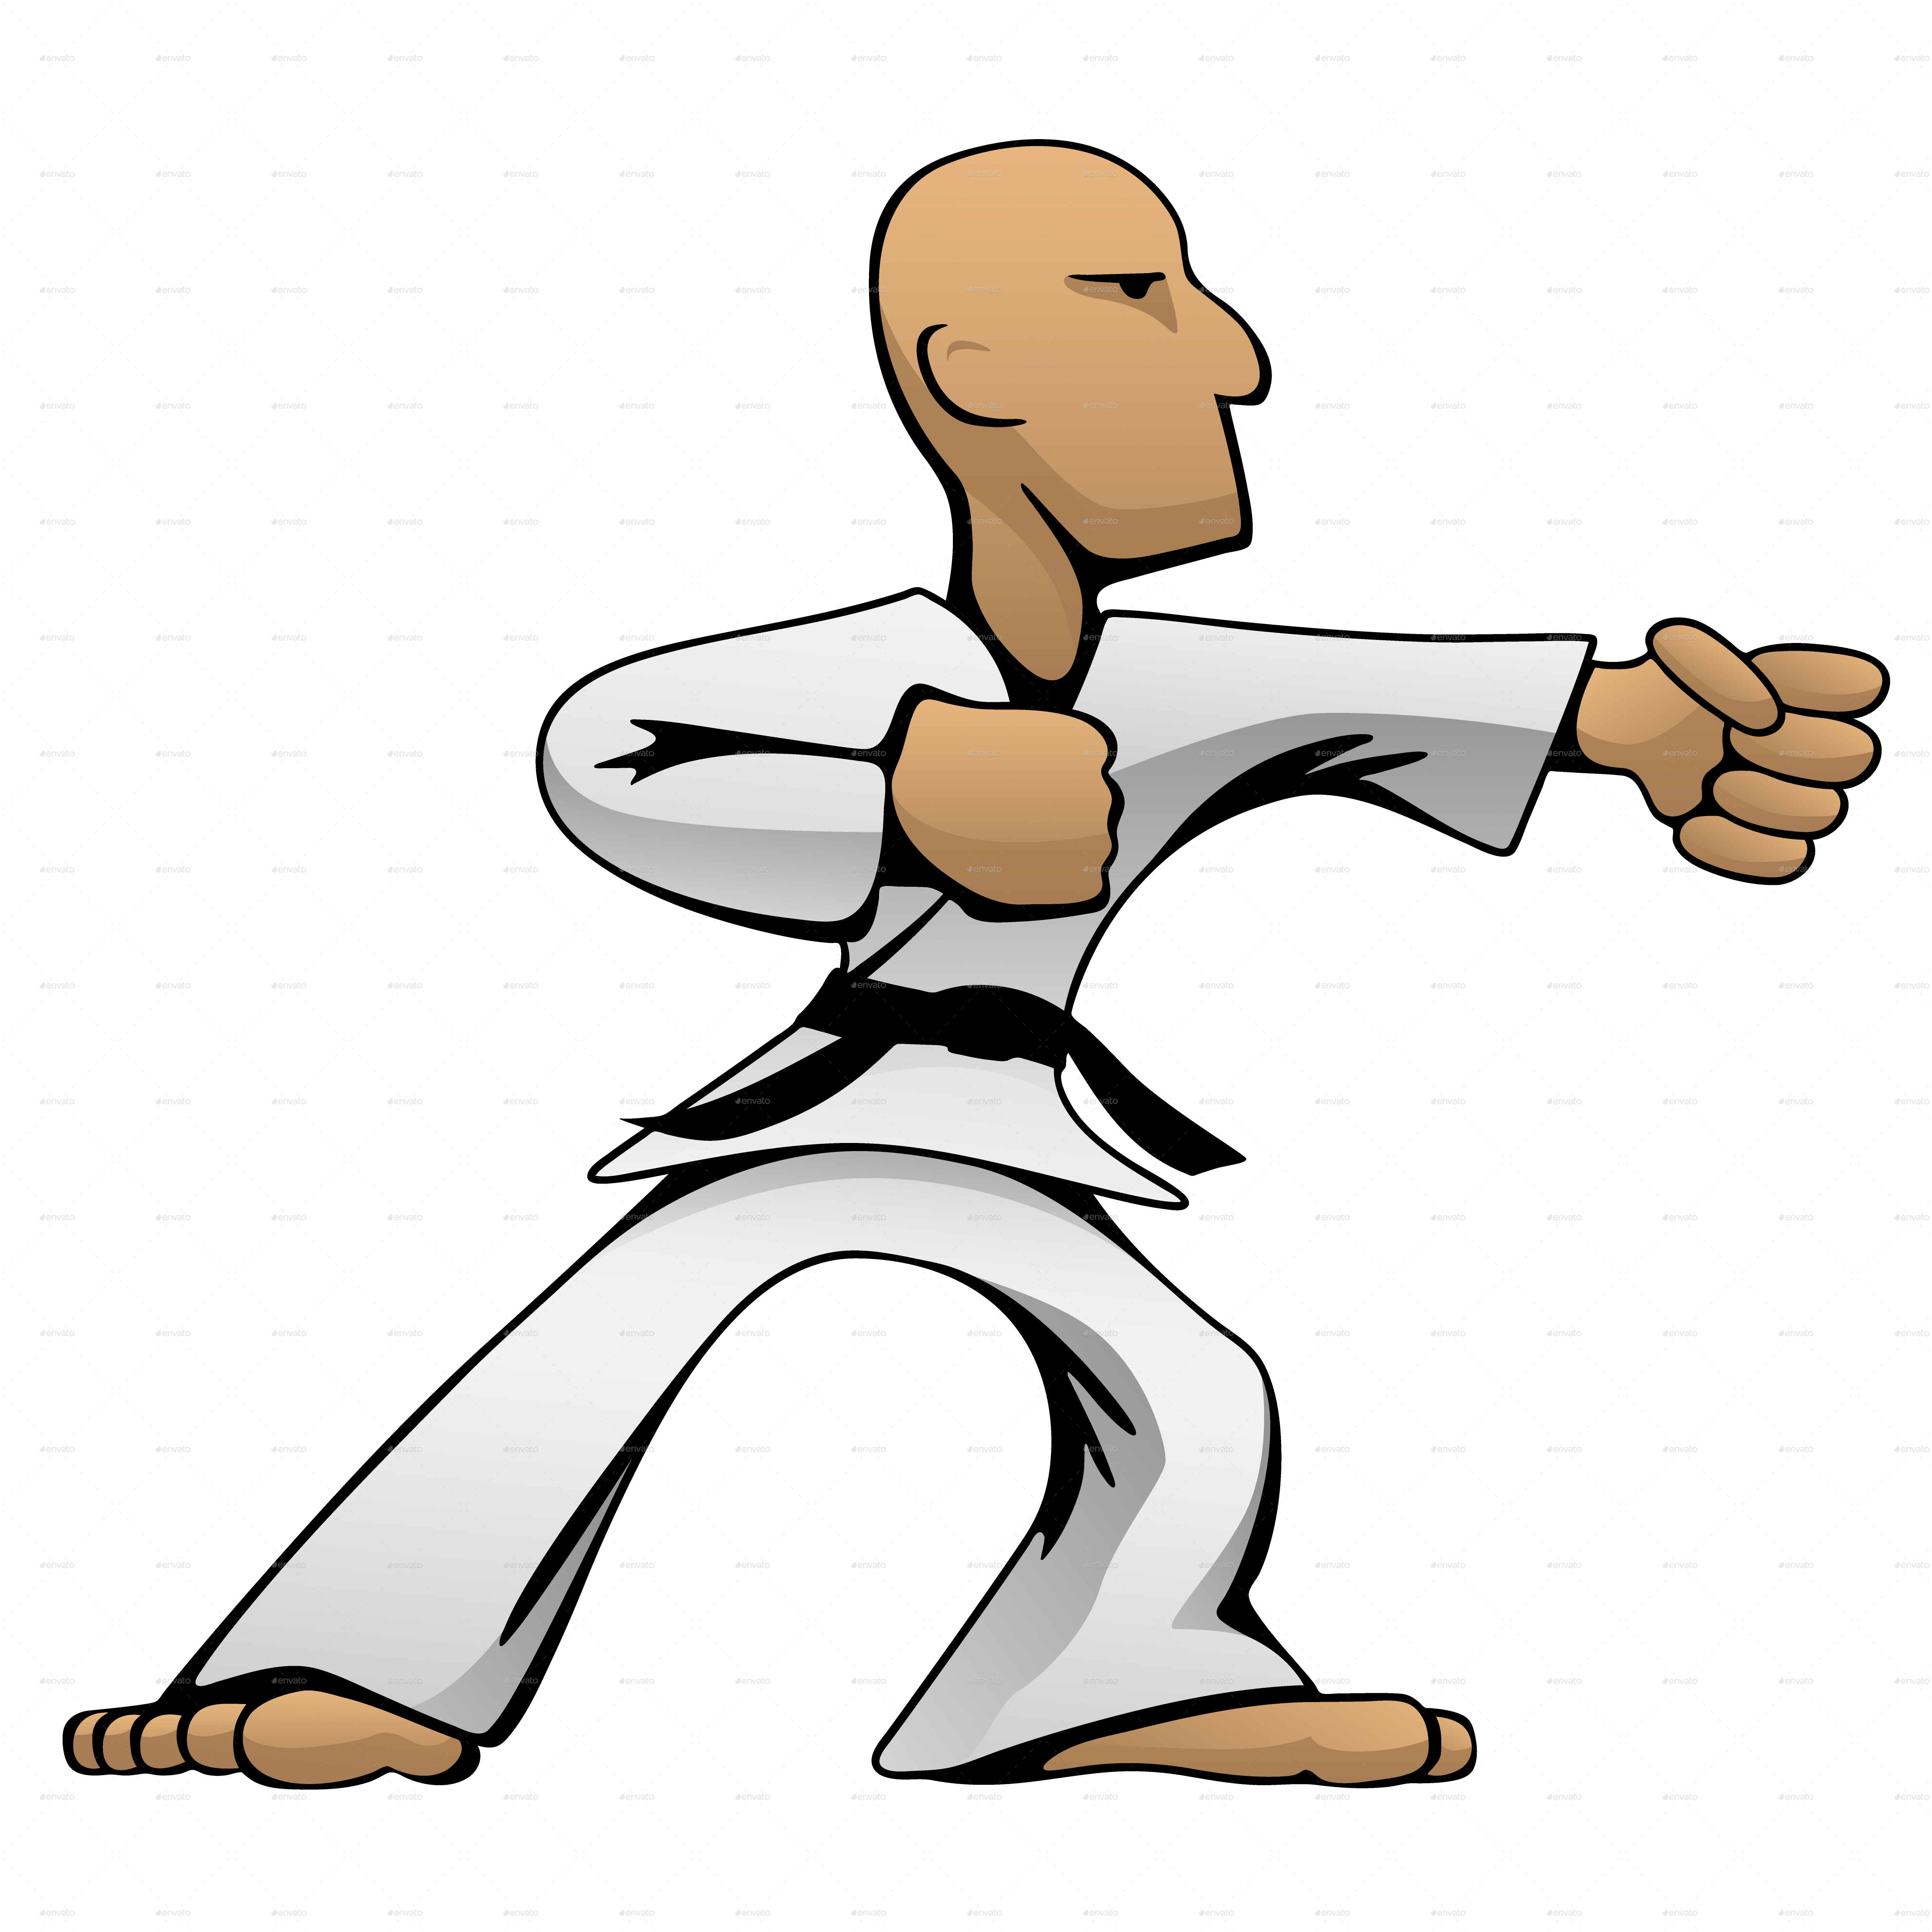 Martial Arts Karate Guy Cartoon Vector Illustration.